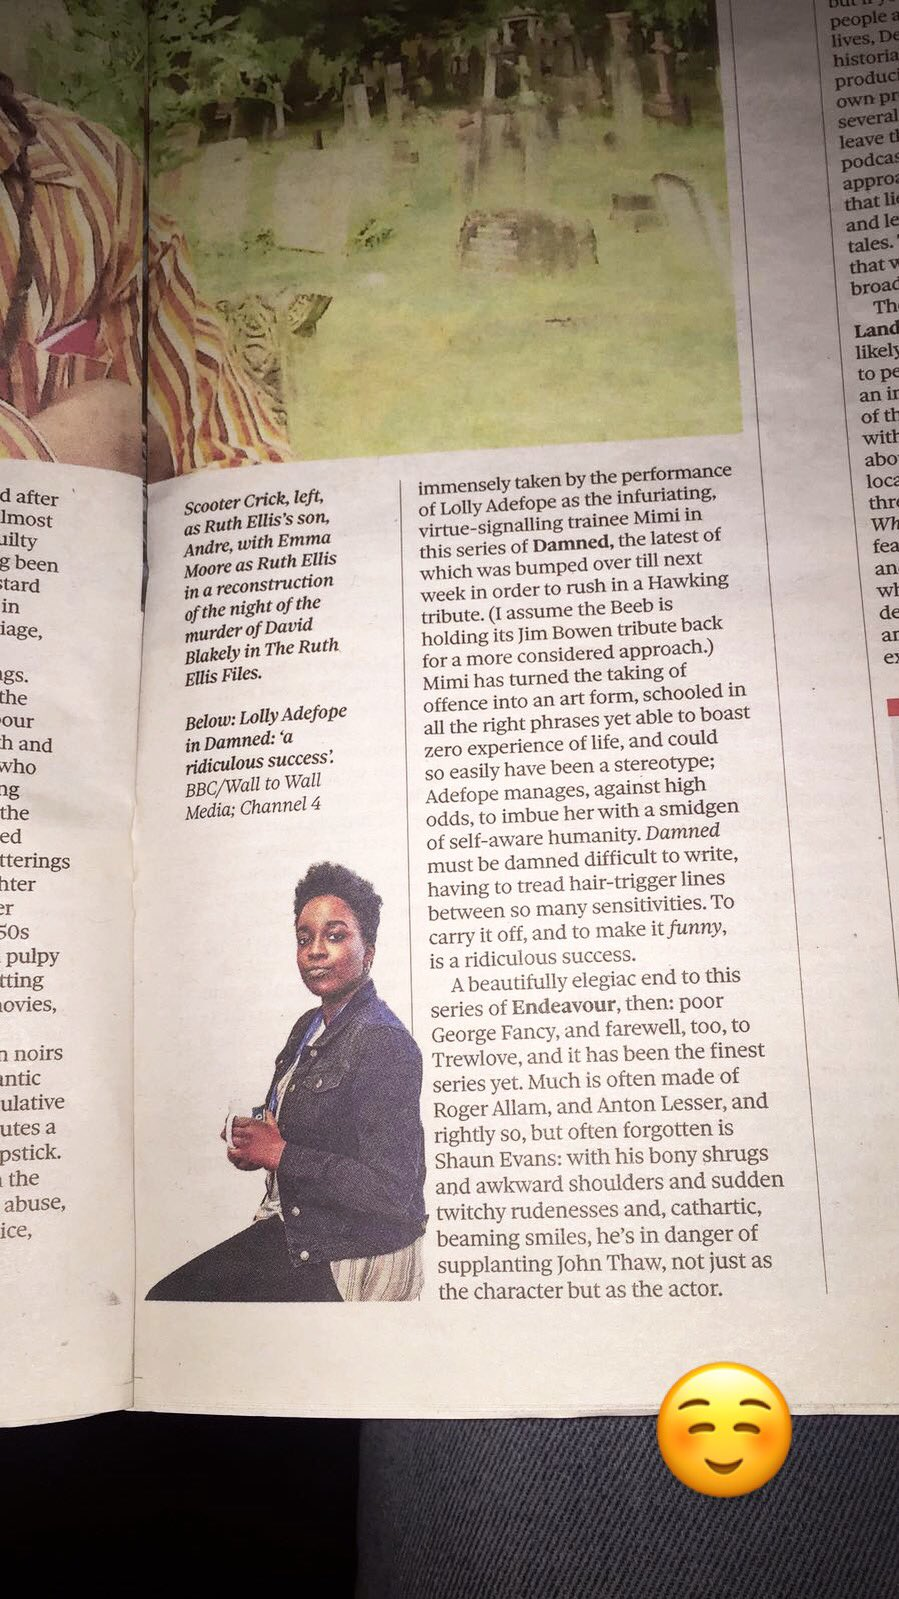 RT @lollyadefope: ✨✨ it me in the observer! ✨✨ DAMNED - @Channel4 - wednesdays - 10pm 💕💕💕 https://t.co/uN2T16yJwf